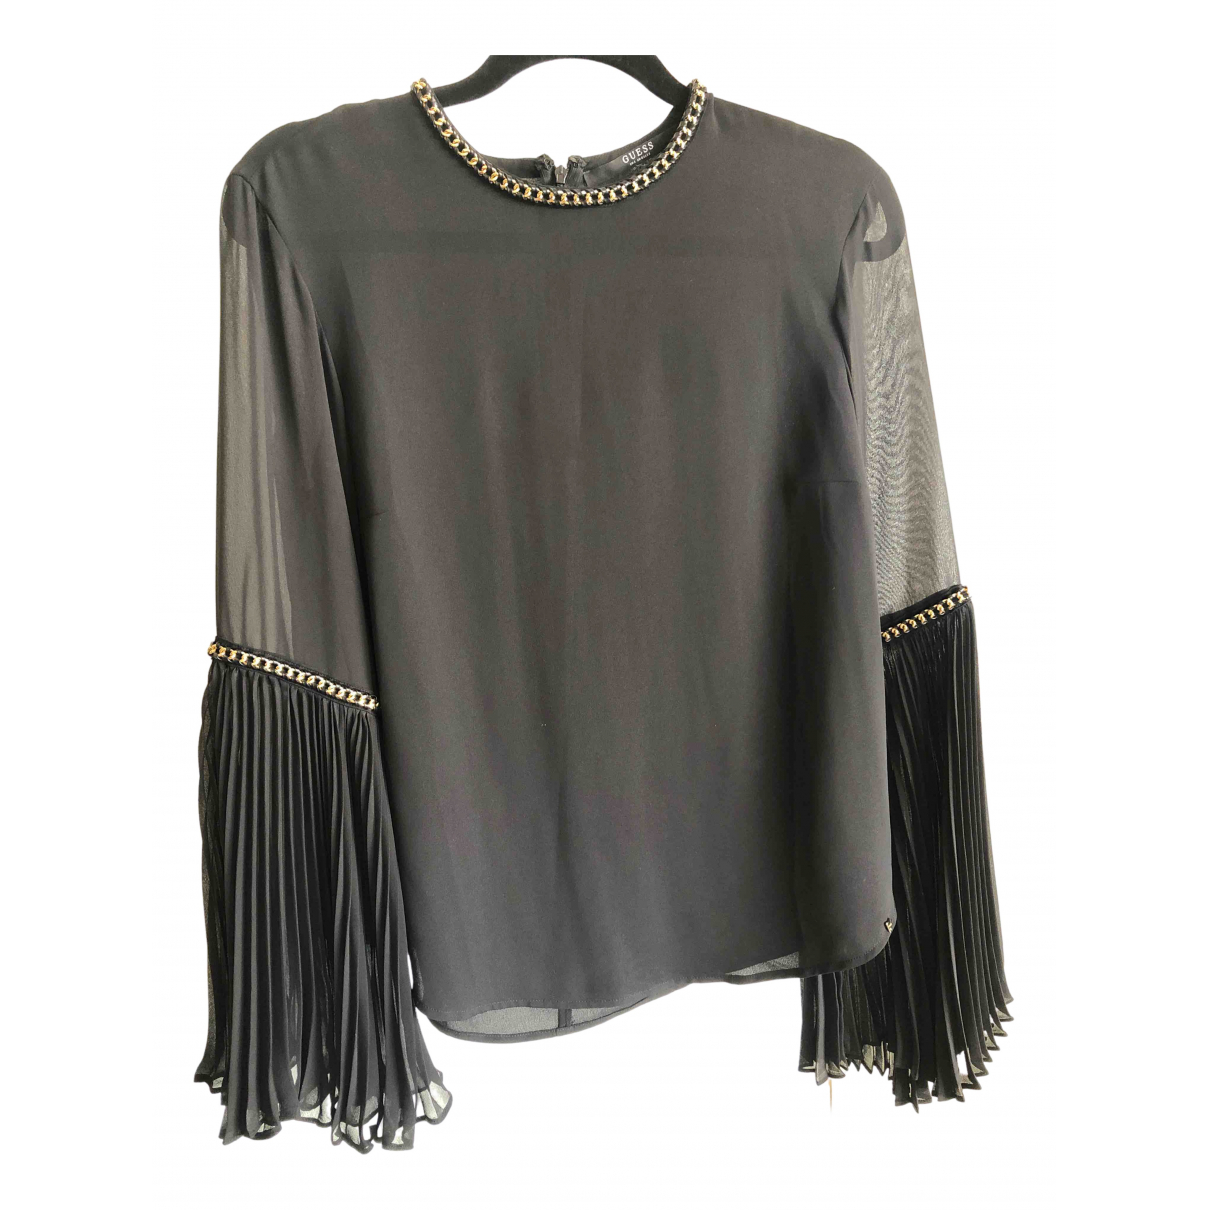 Guess \N Black  top for Women 36 FR